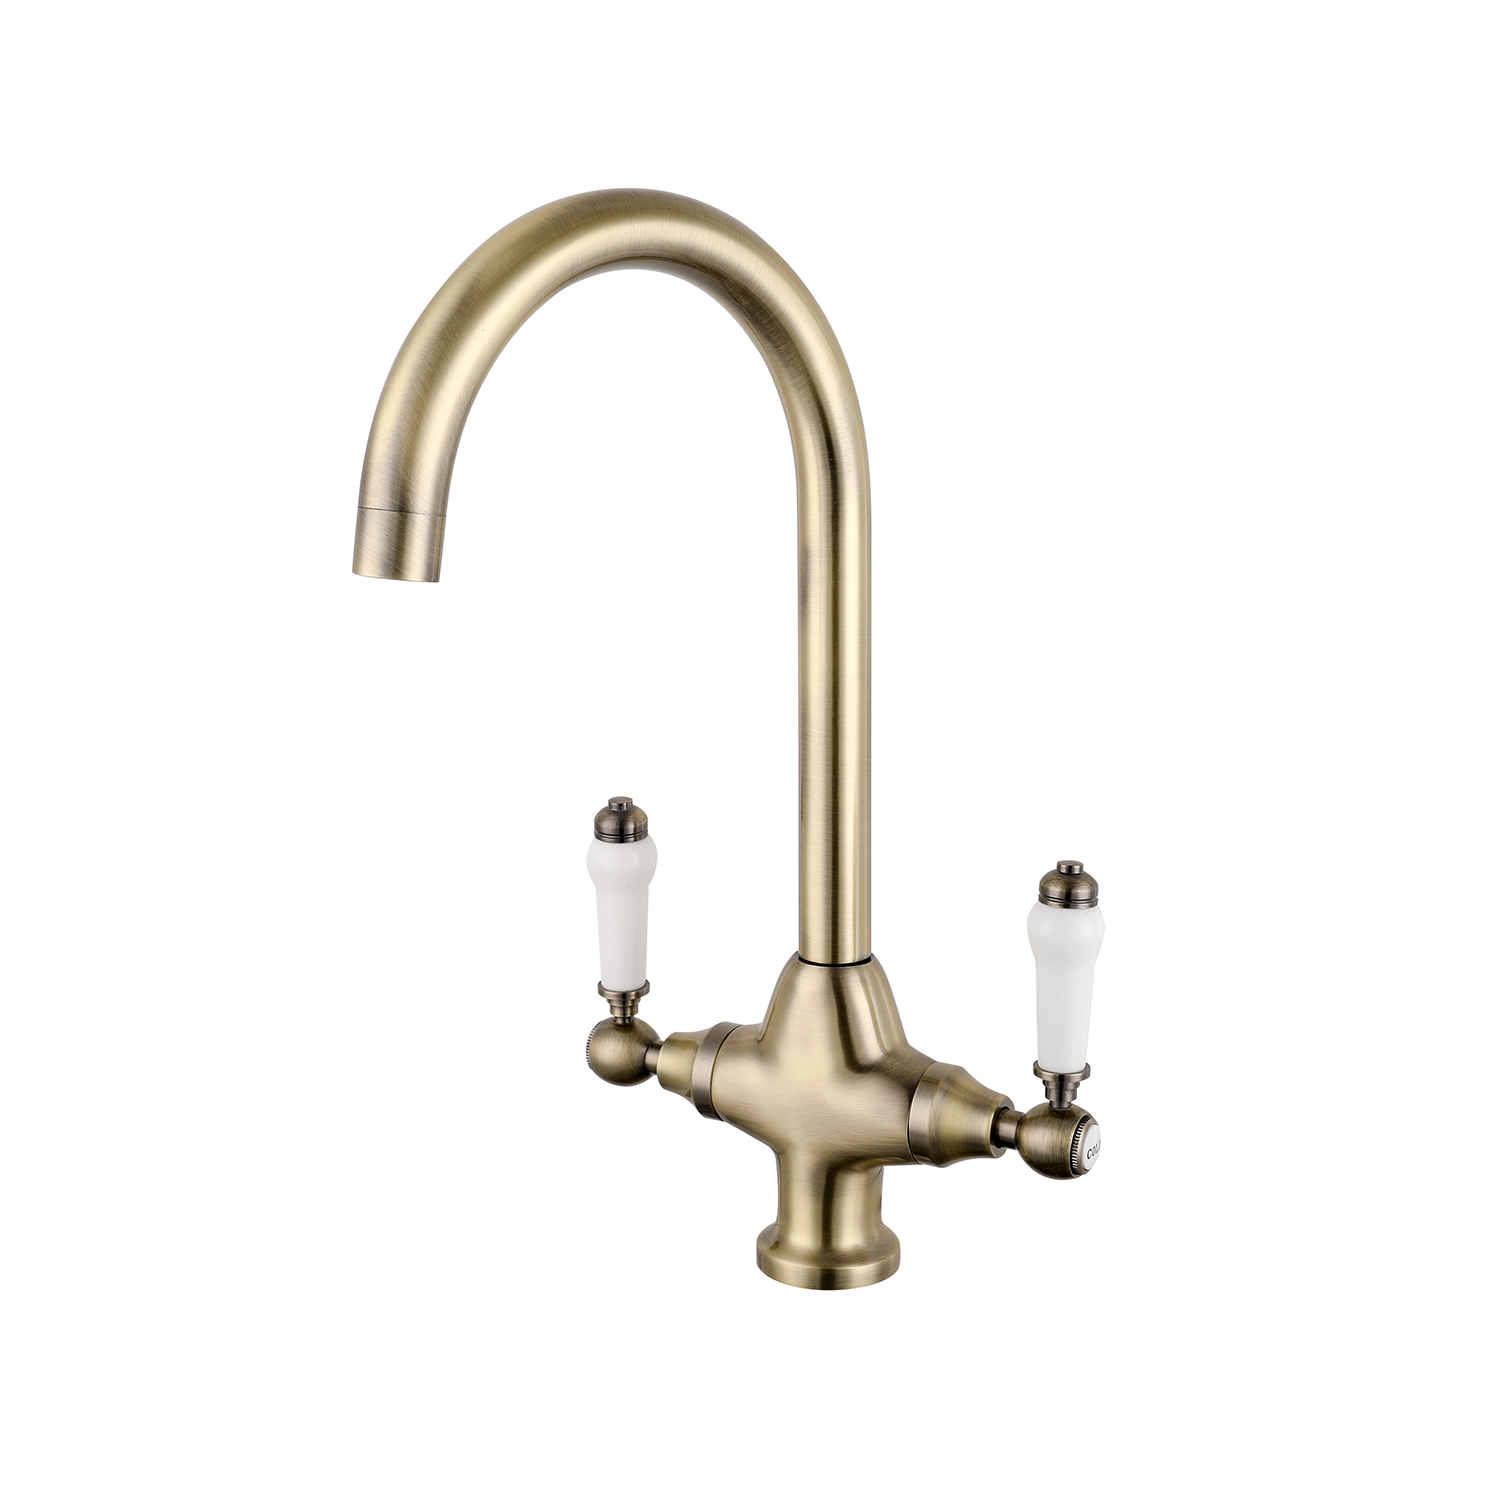 Gold Polished Brass Kitchen Traditional Ceramic Lever Mono bloc Mixer Tap Belfast Butler